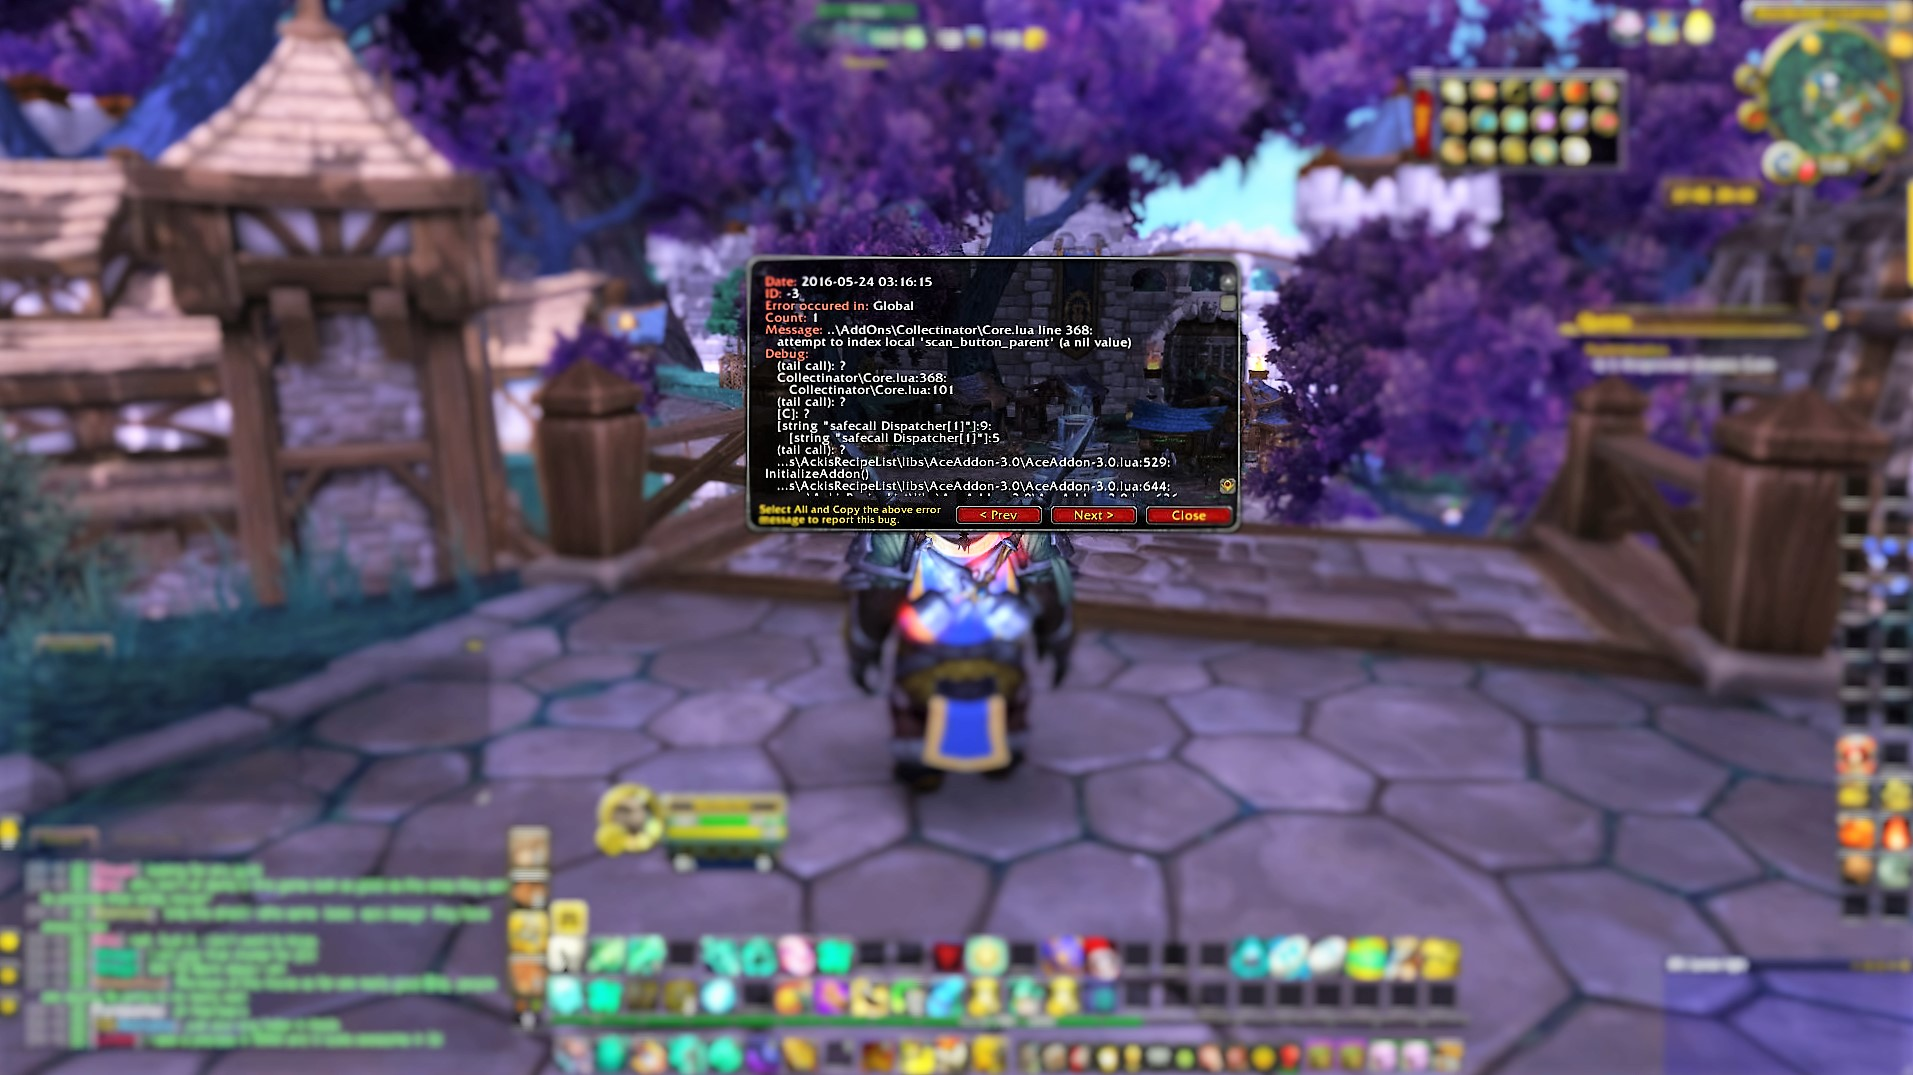 203 addon error - Issues - Collectinator - Addons - Projects